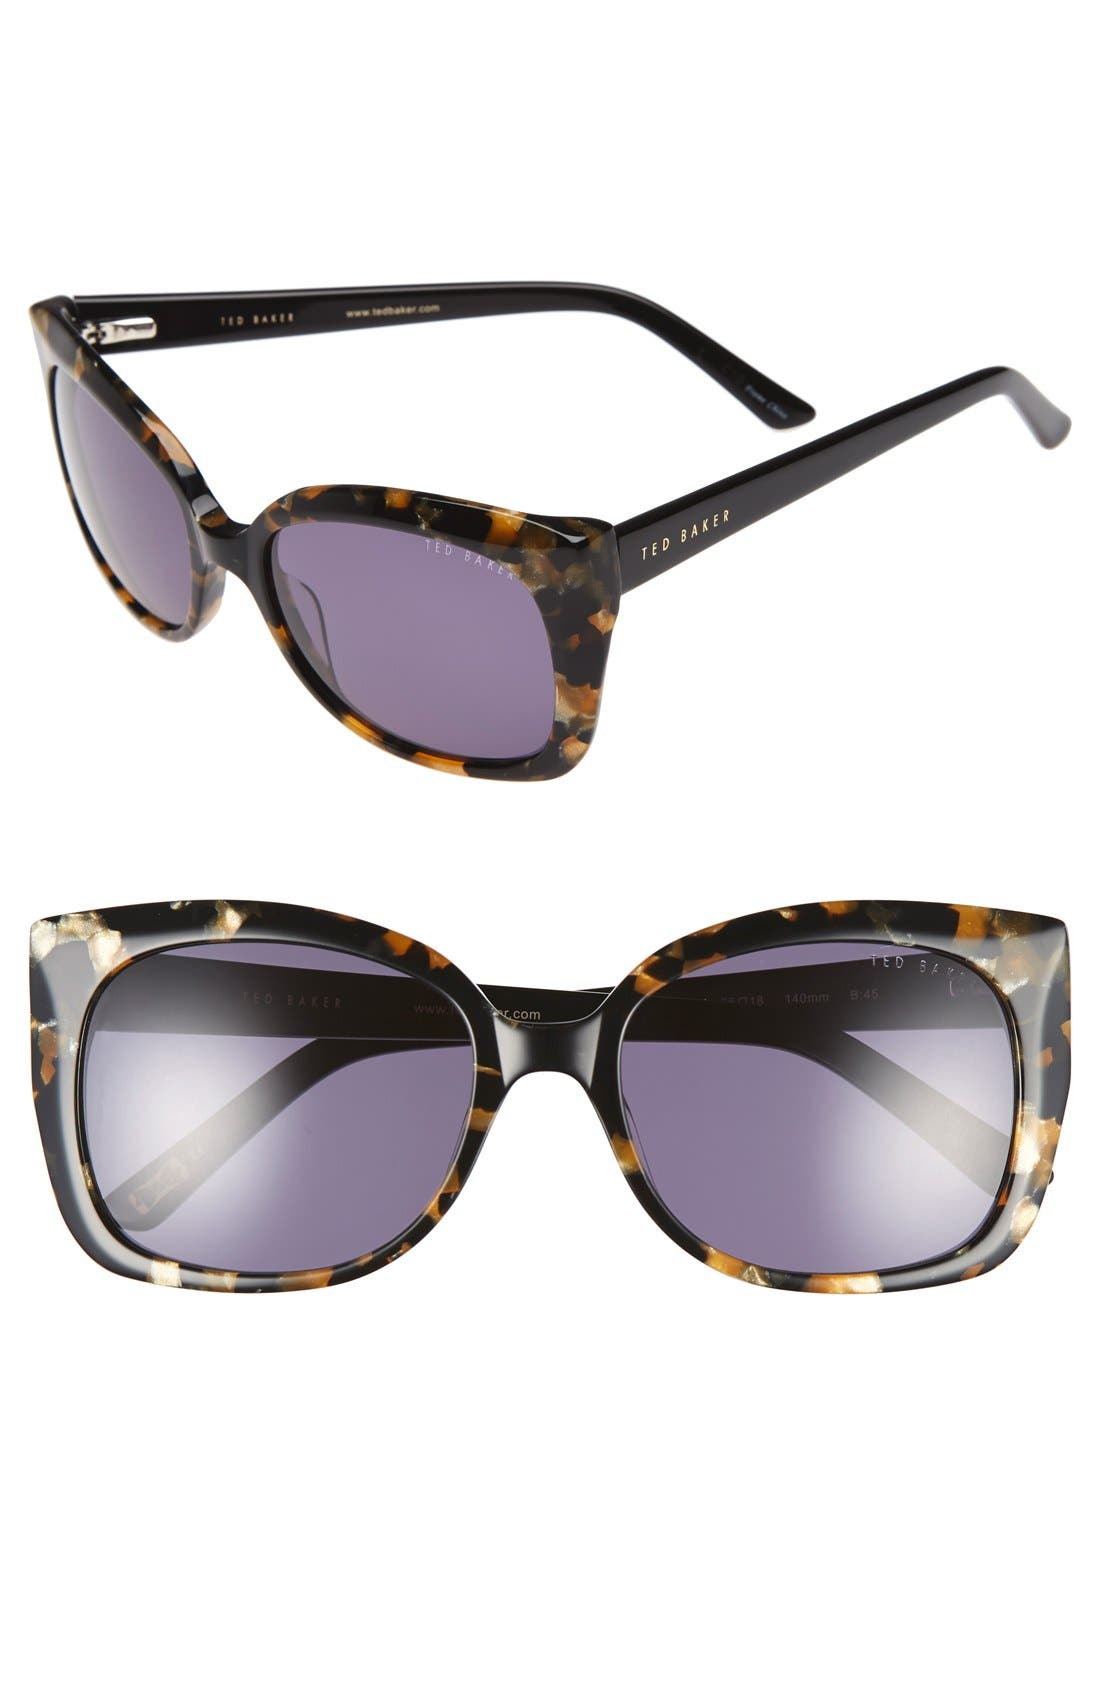 TED BAKER LONDON Hi Dimension 55mm Cat Eye Sunglasses